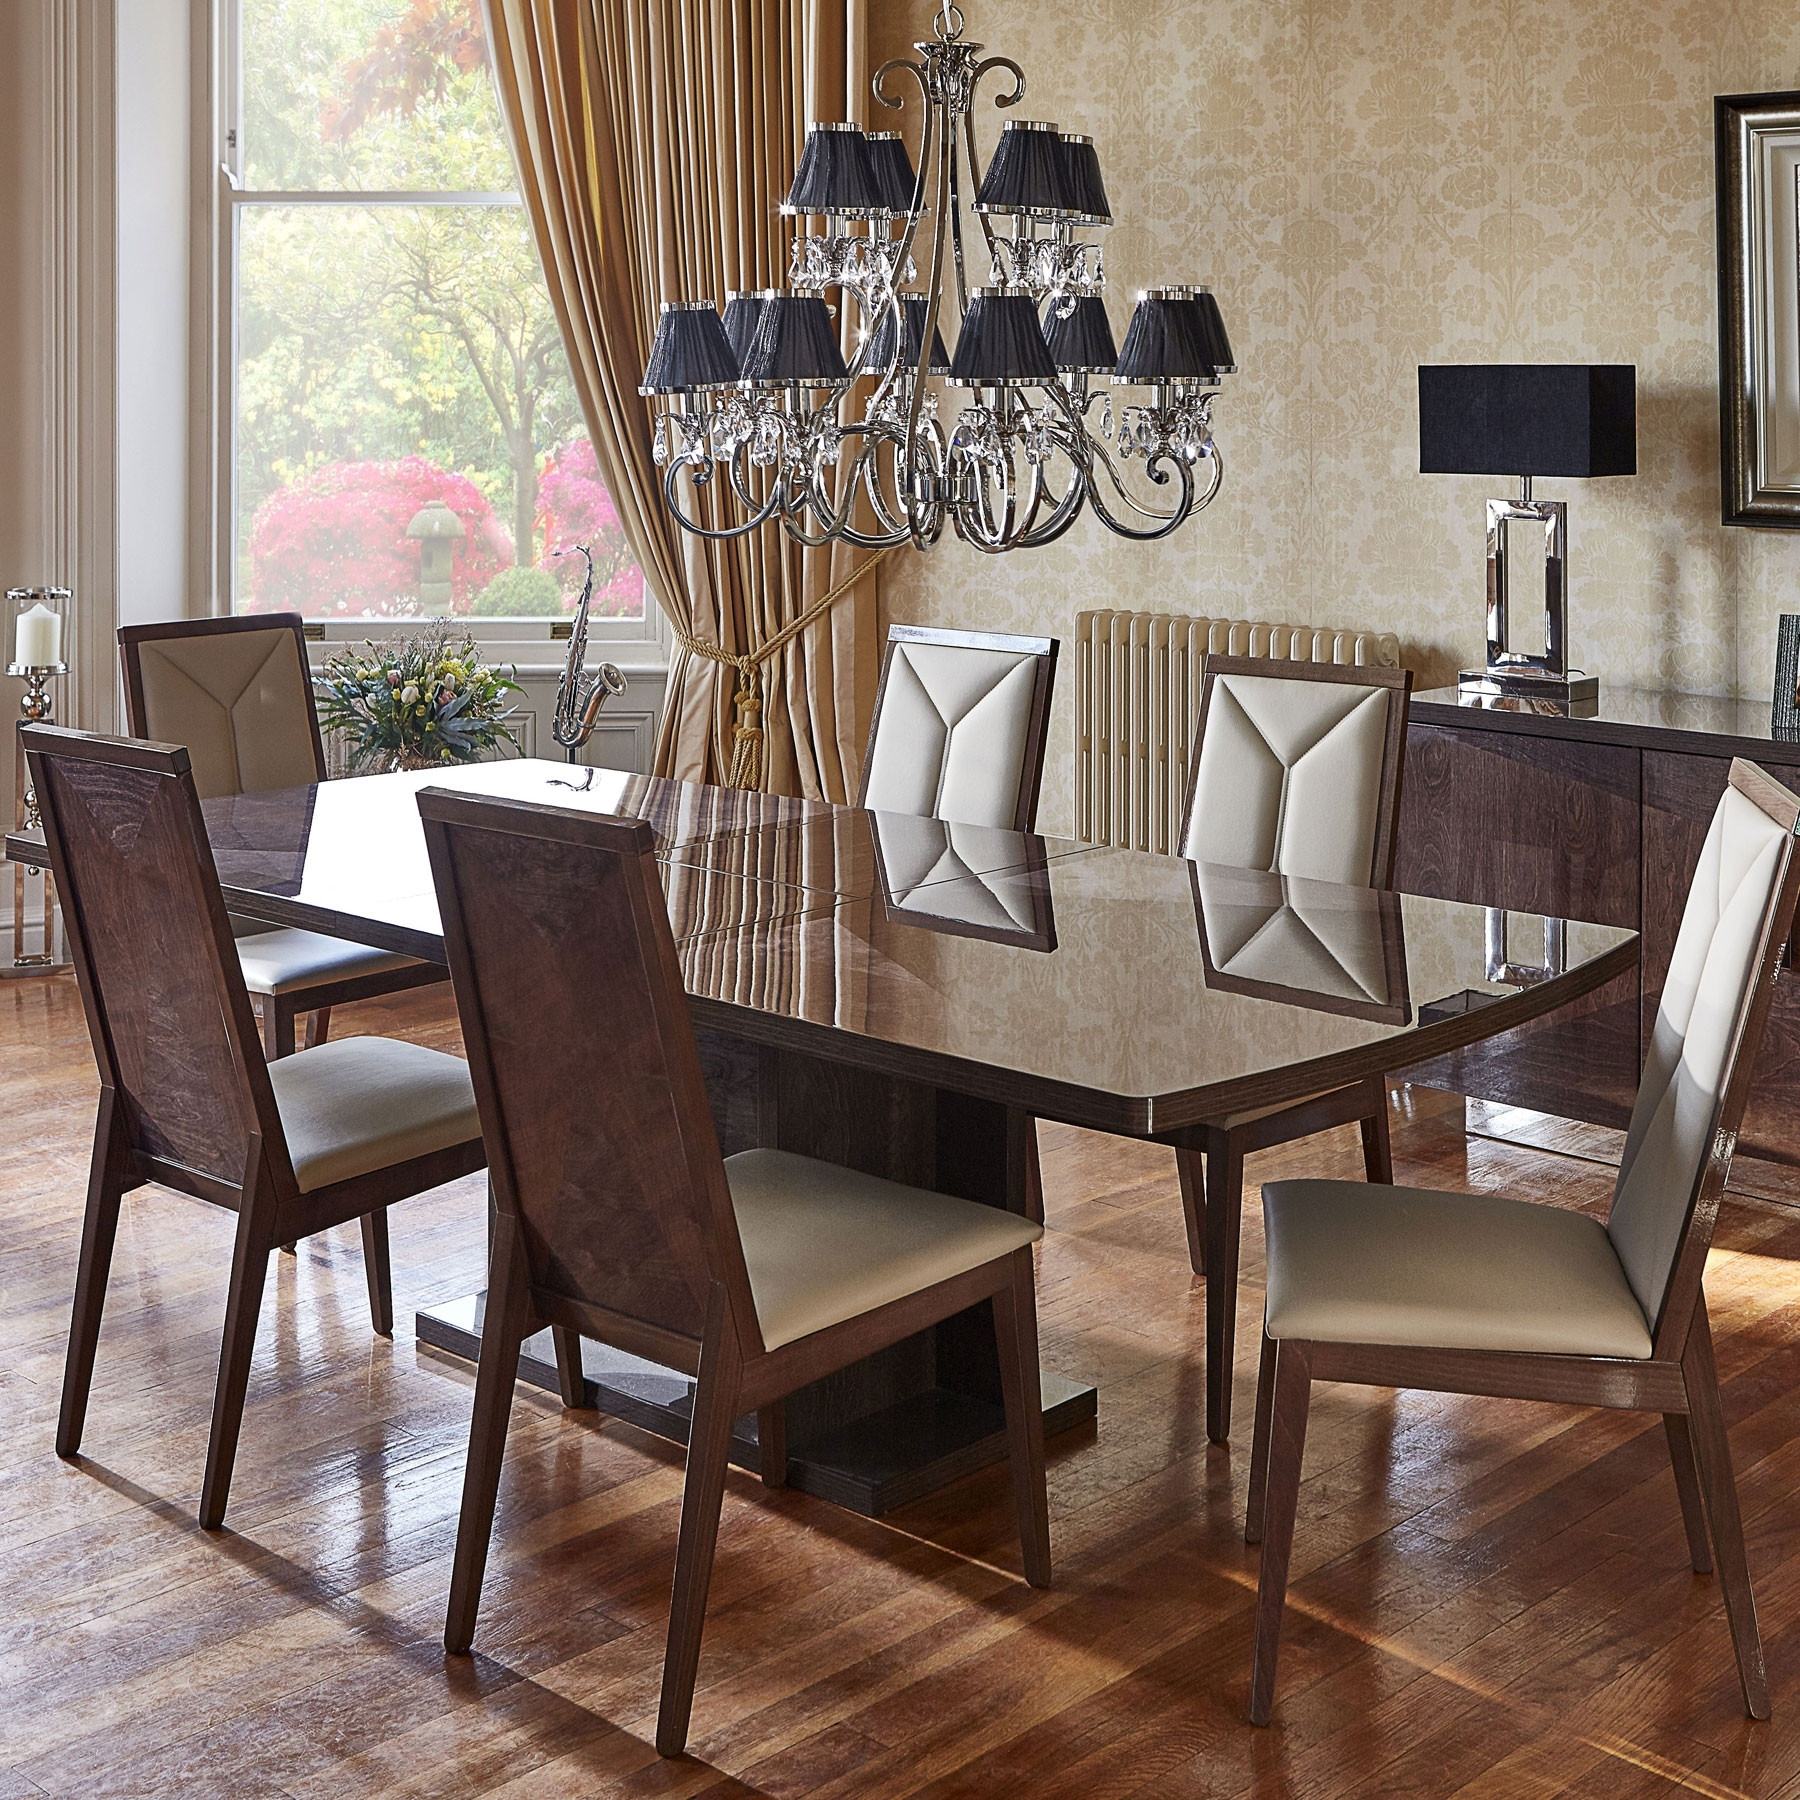 Vogue High Gloss Extending Dining Table & 6 Chairs With Regard To Most Popular High Gloss Extending Dining Tables (View 4 of 25)